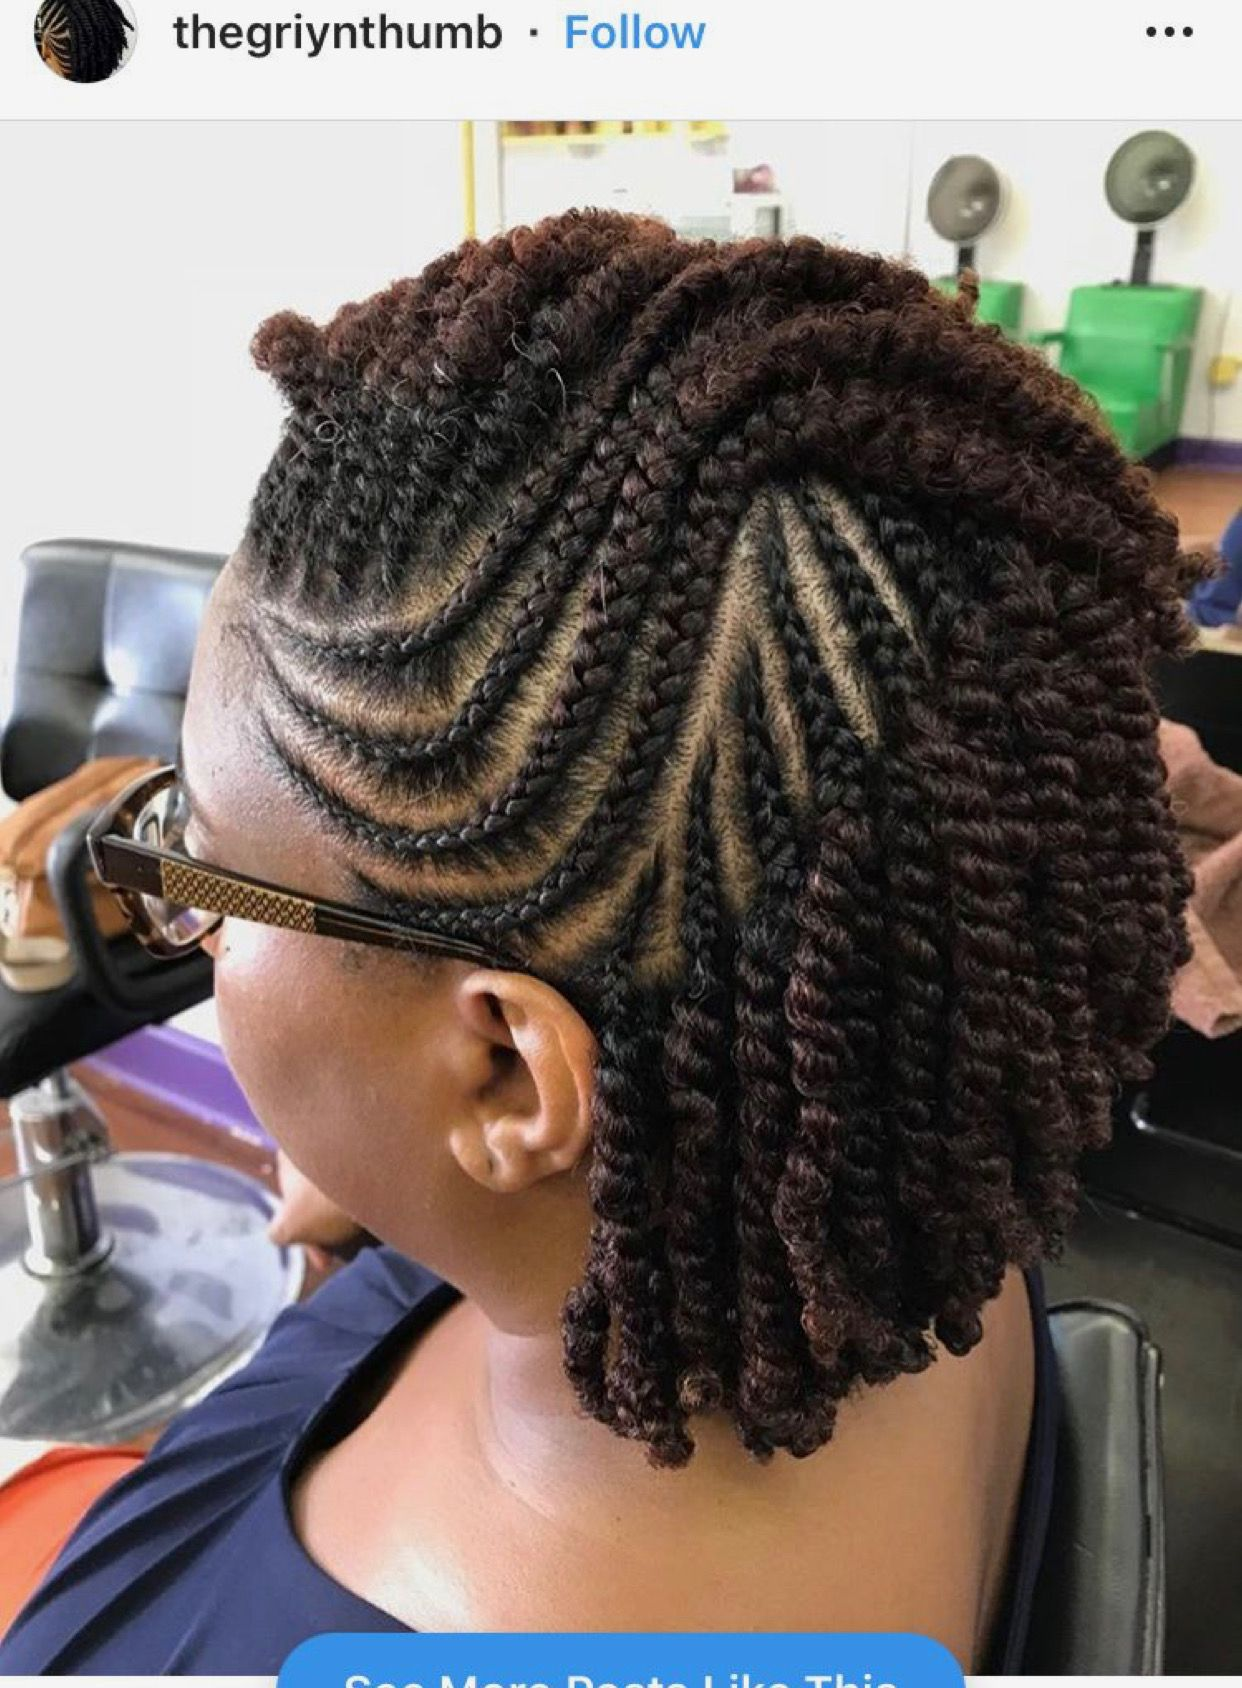 Pin By Cynthia Cayol On Black Hair Natural Hair Twists Hair Twist Styles Twist Hairstyles